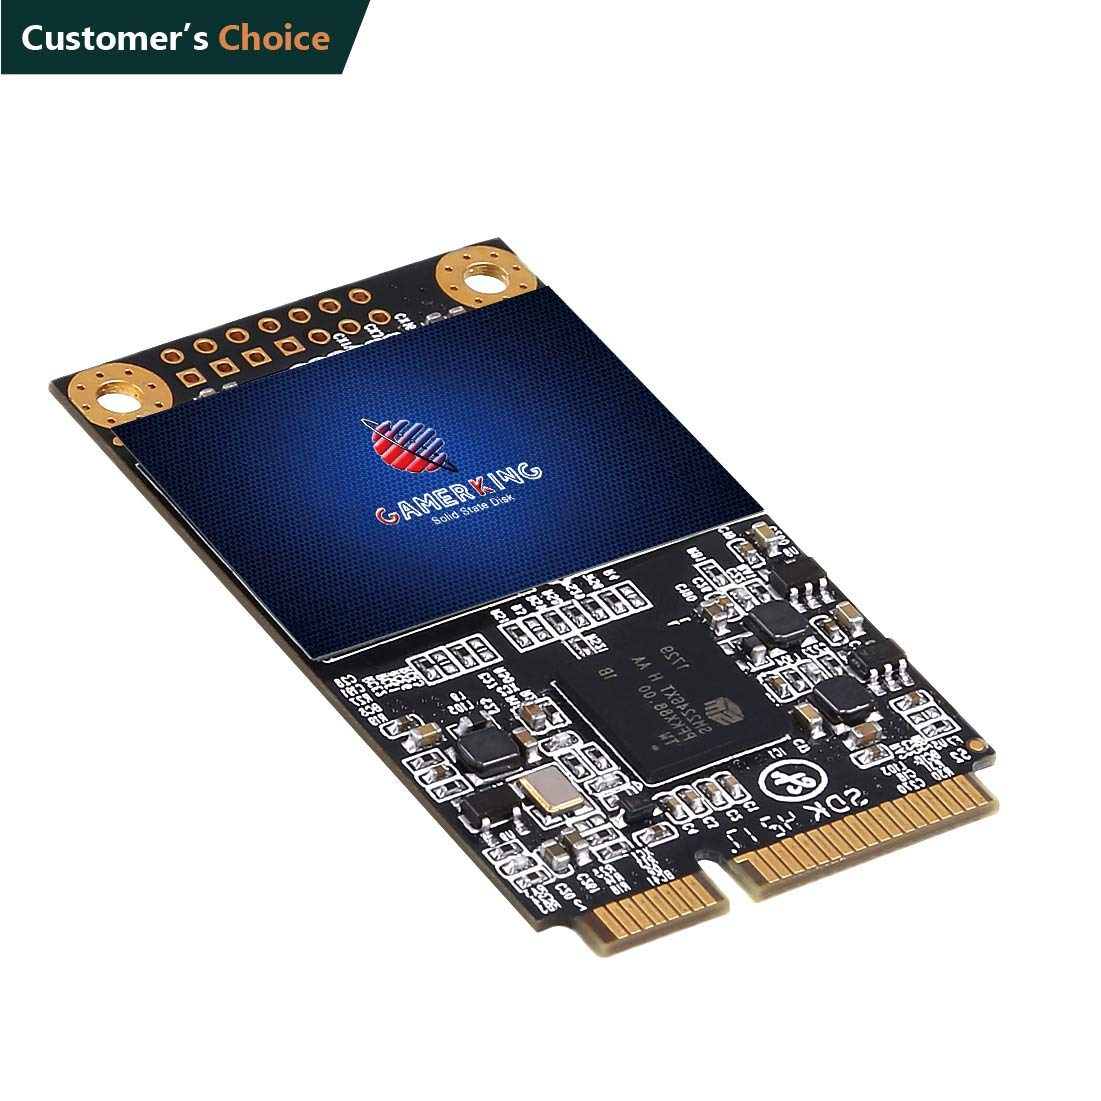 480GB SSD mSATA GAMERKING